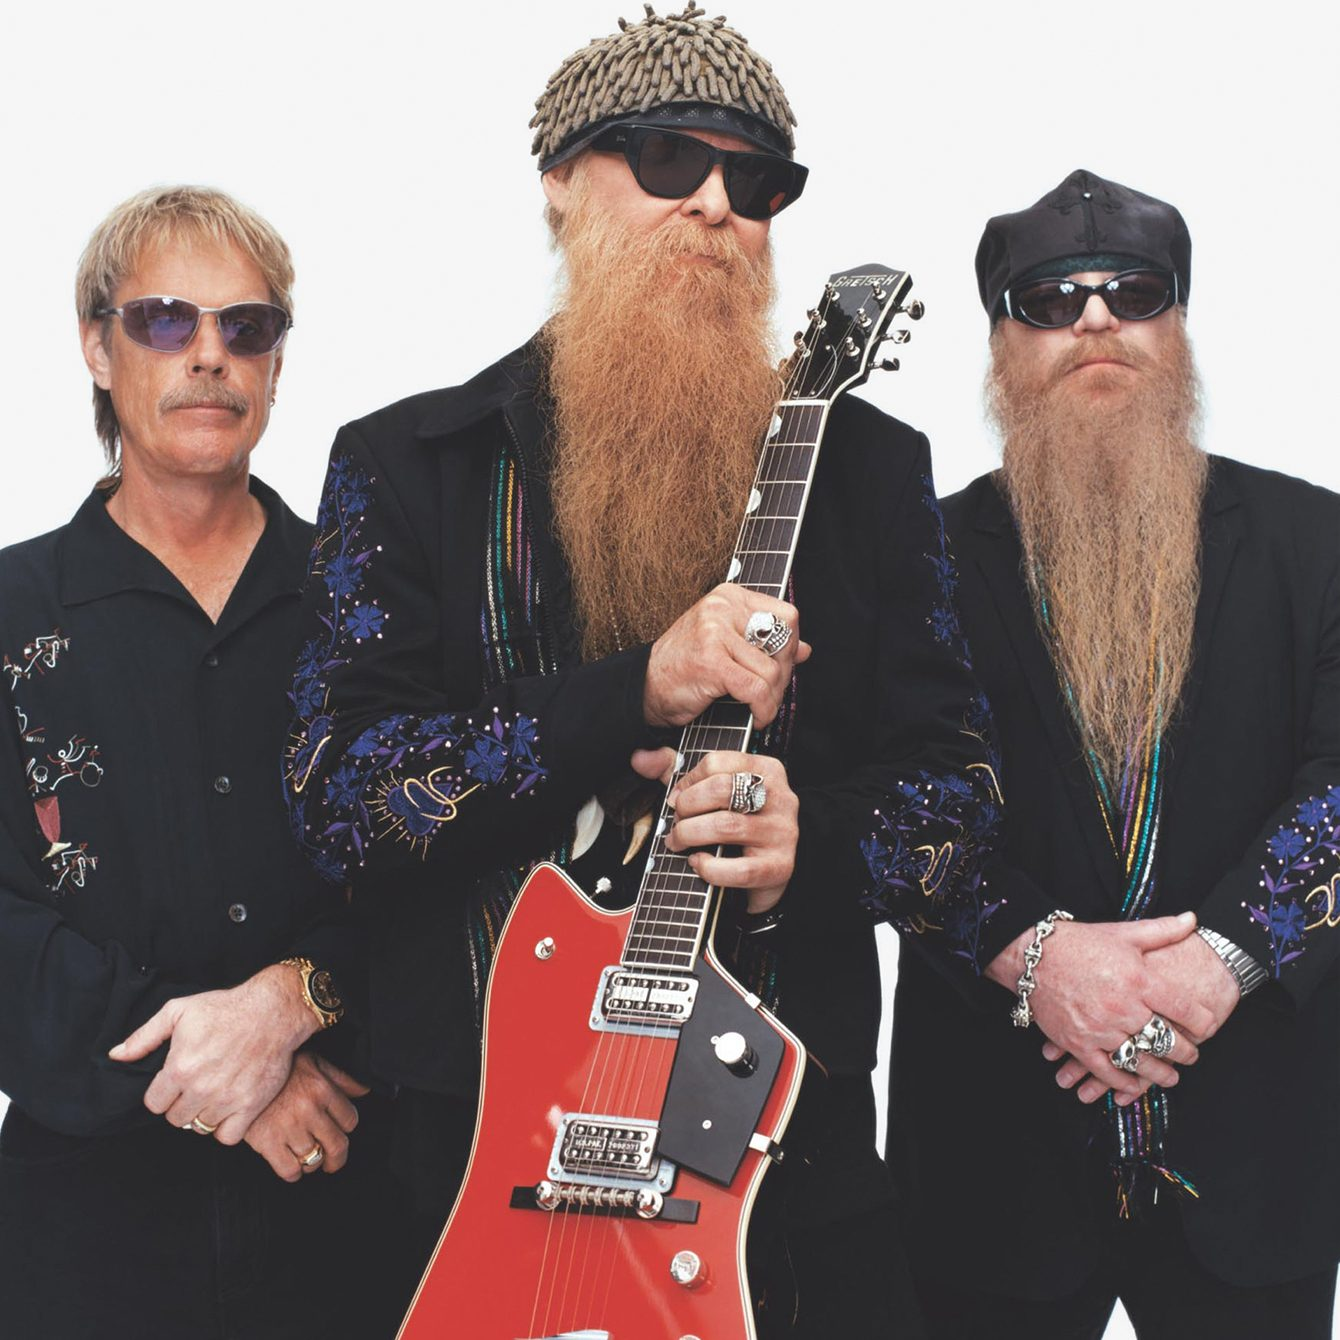 ZZ Top Billy Gibbons Frank Beard Dusty 2003 e1599574751771 25 Totally Non-Heinous Facts About Bill & Ted's Excellent Adventure!